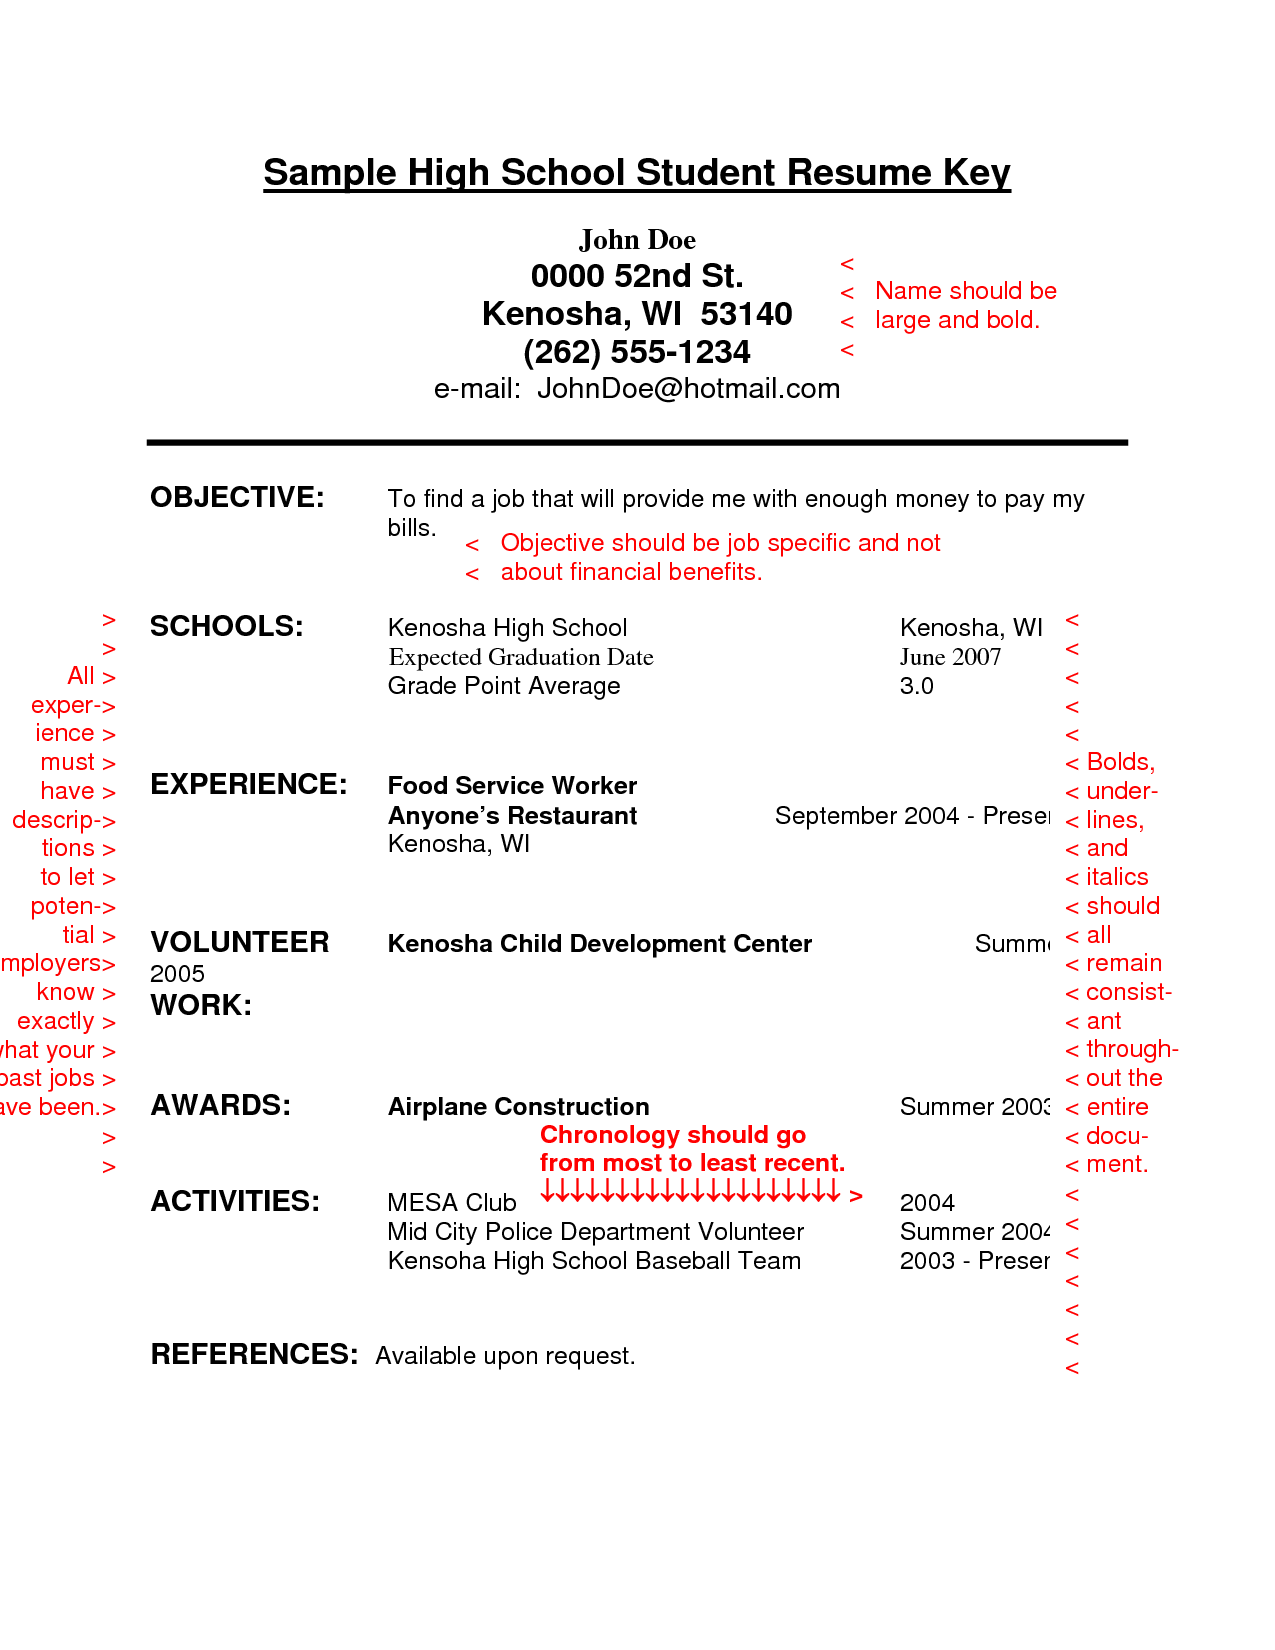 resume sle for high school students with no experience